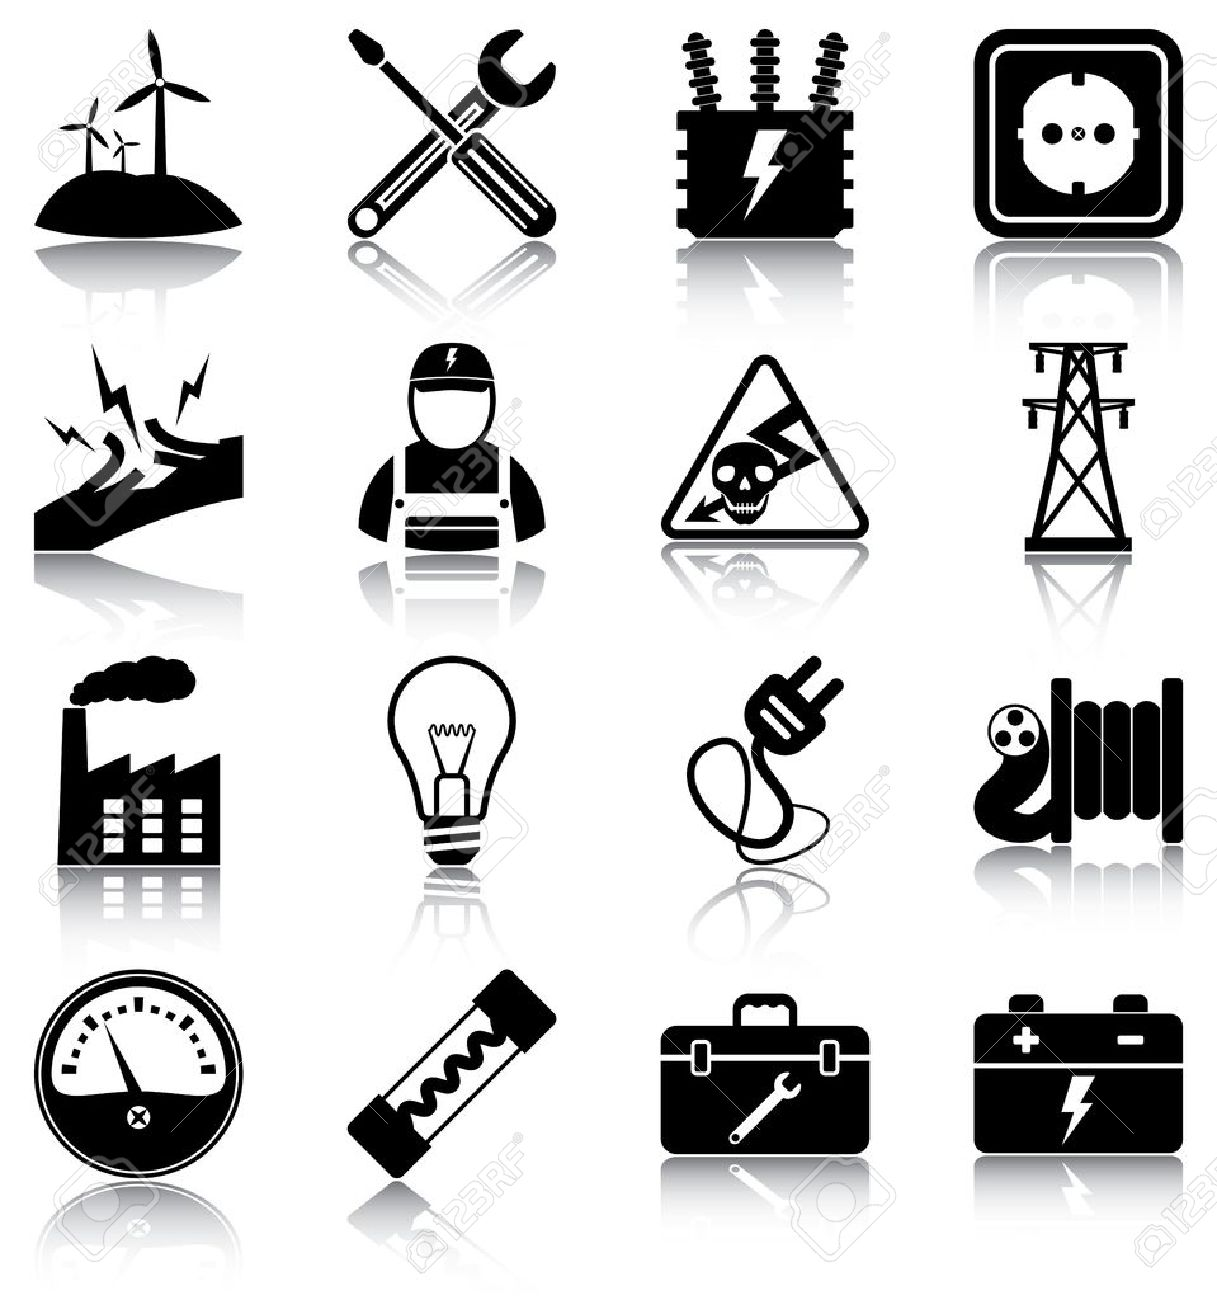 1,648 Electricity Meter Stock Illustrations, Cliparts And Royalty ...